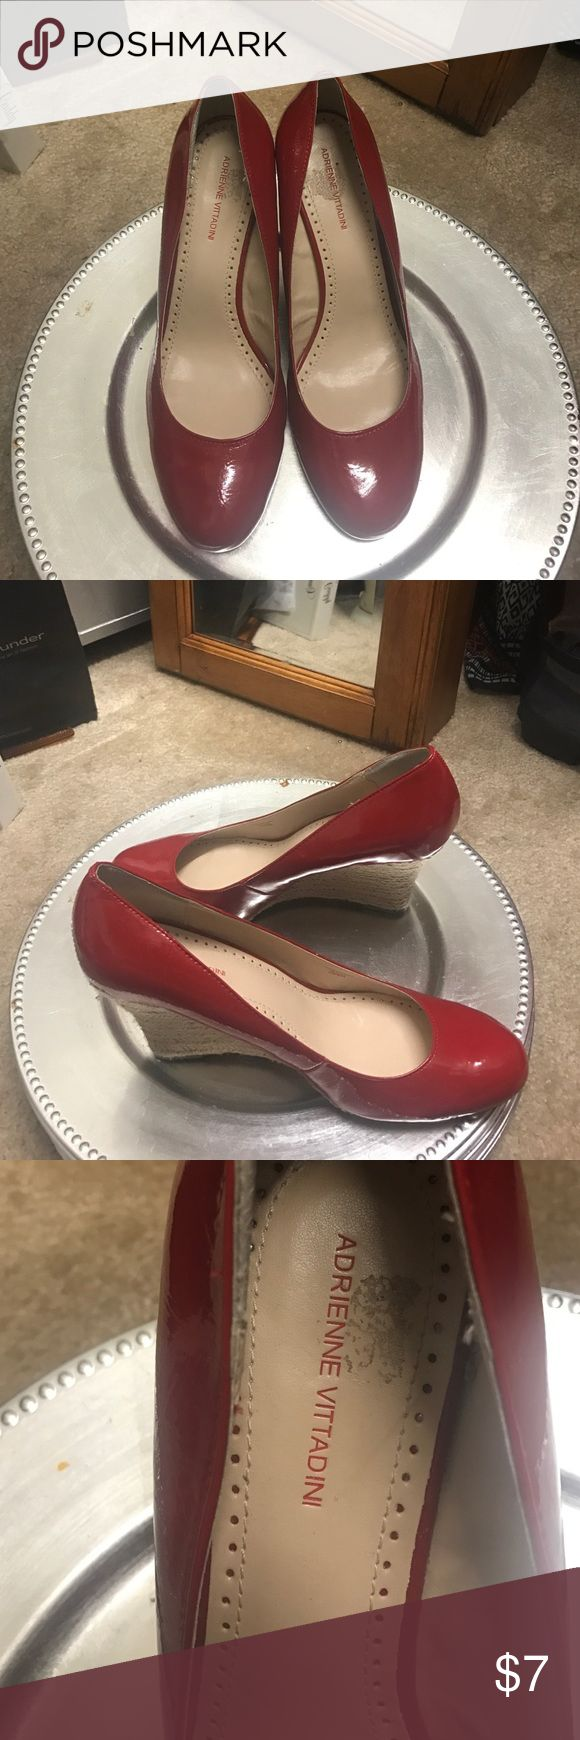 Red wedge shoes Red wedge heels shoes Shoes Wedges